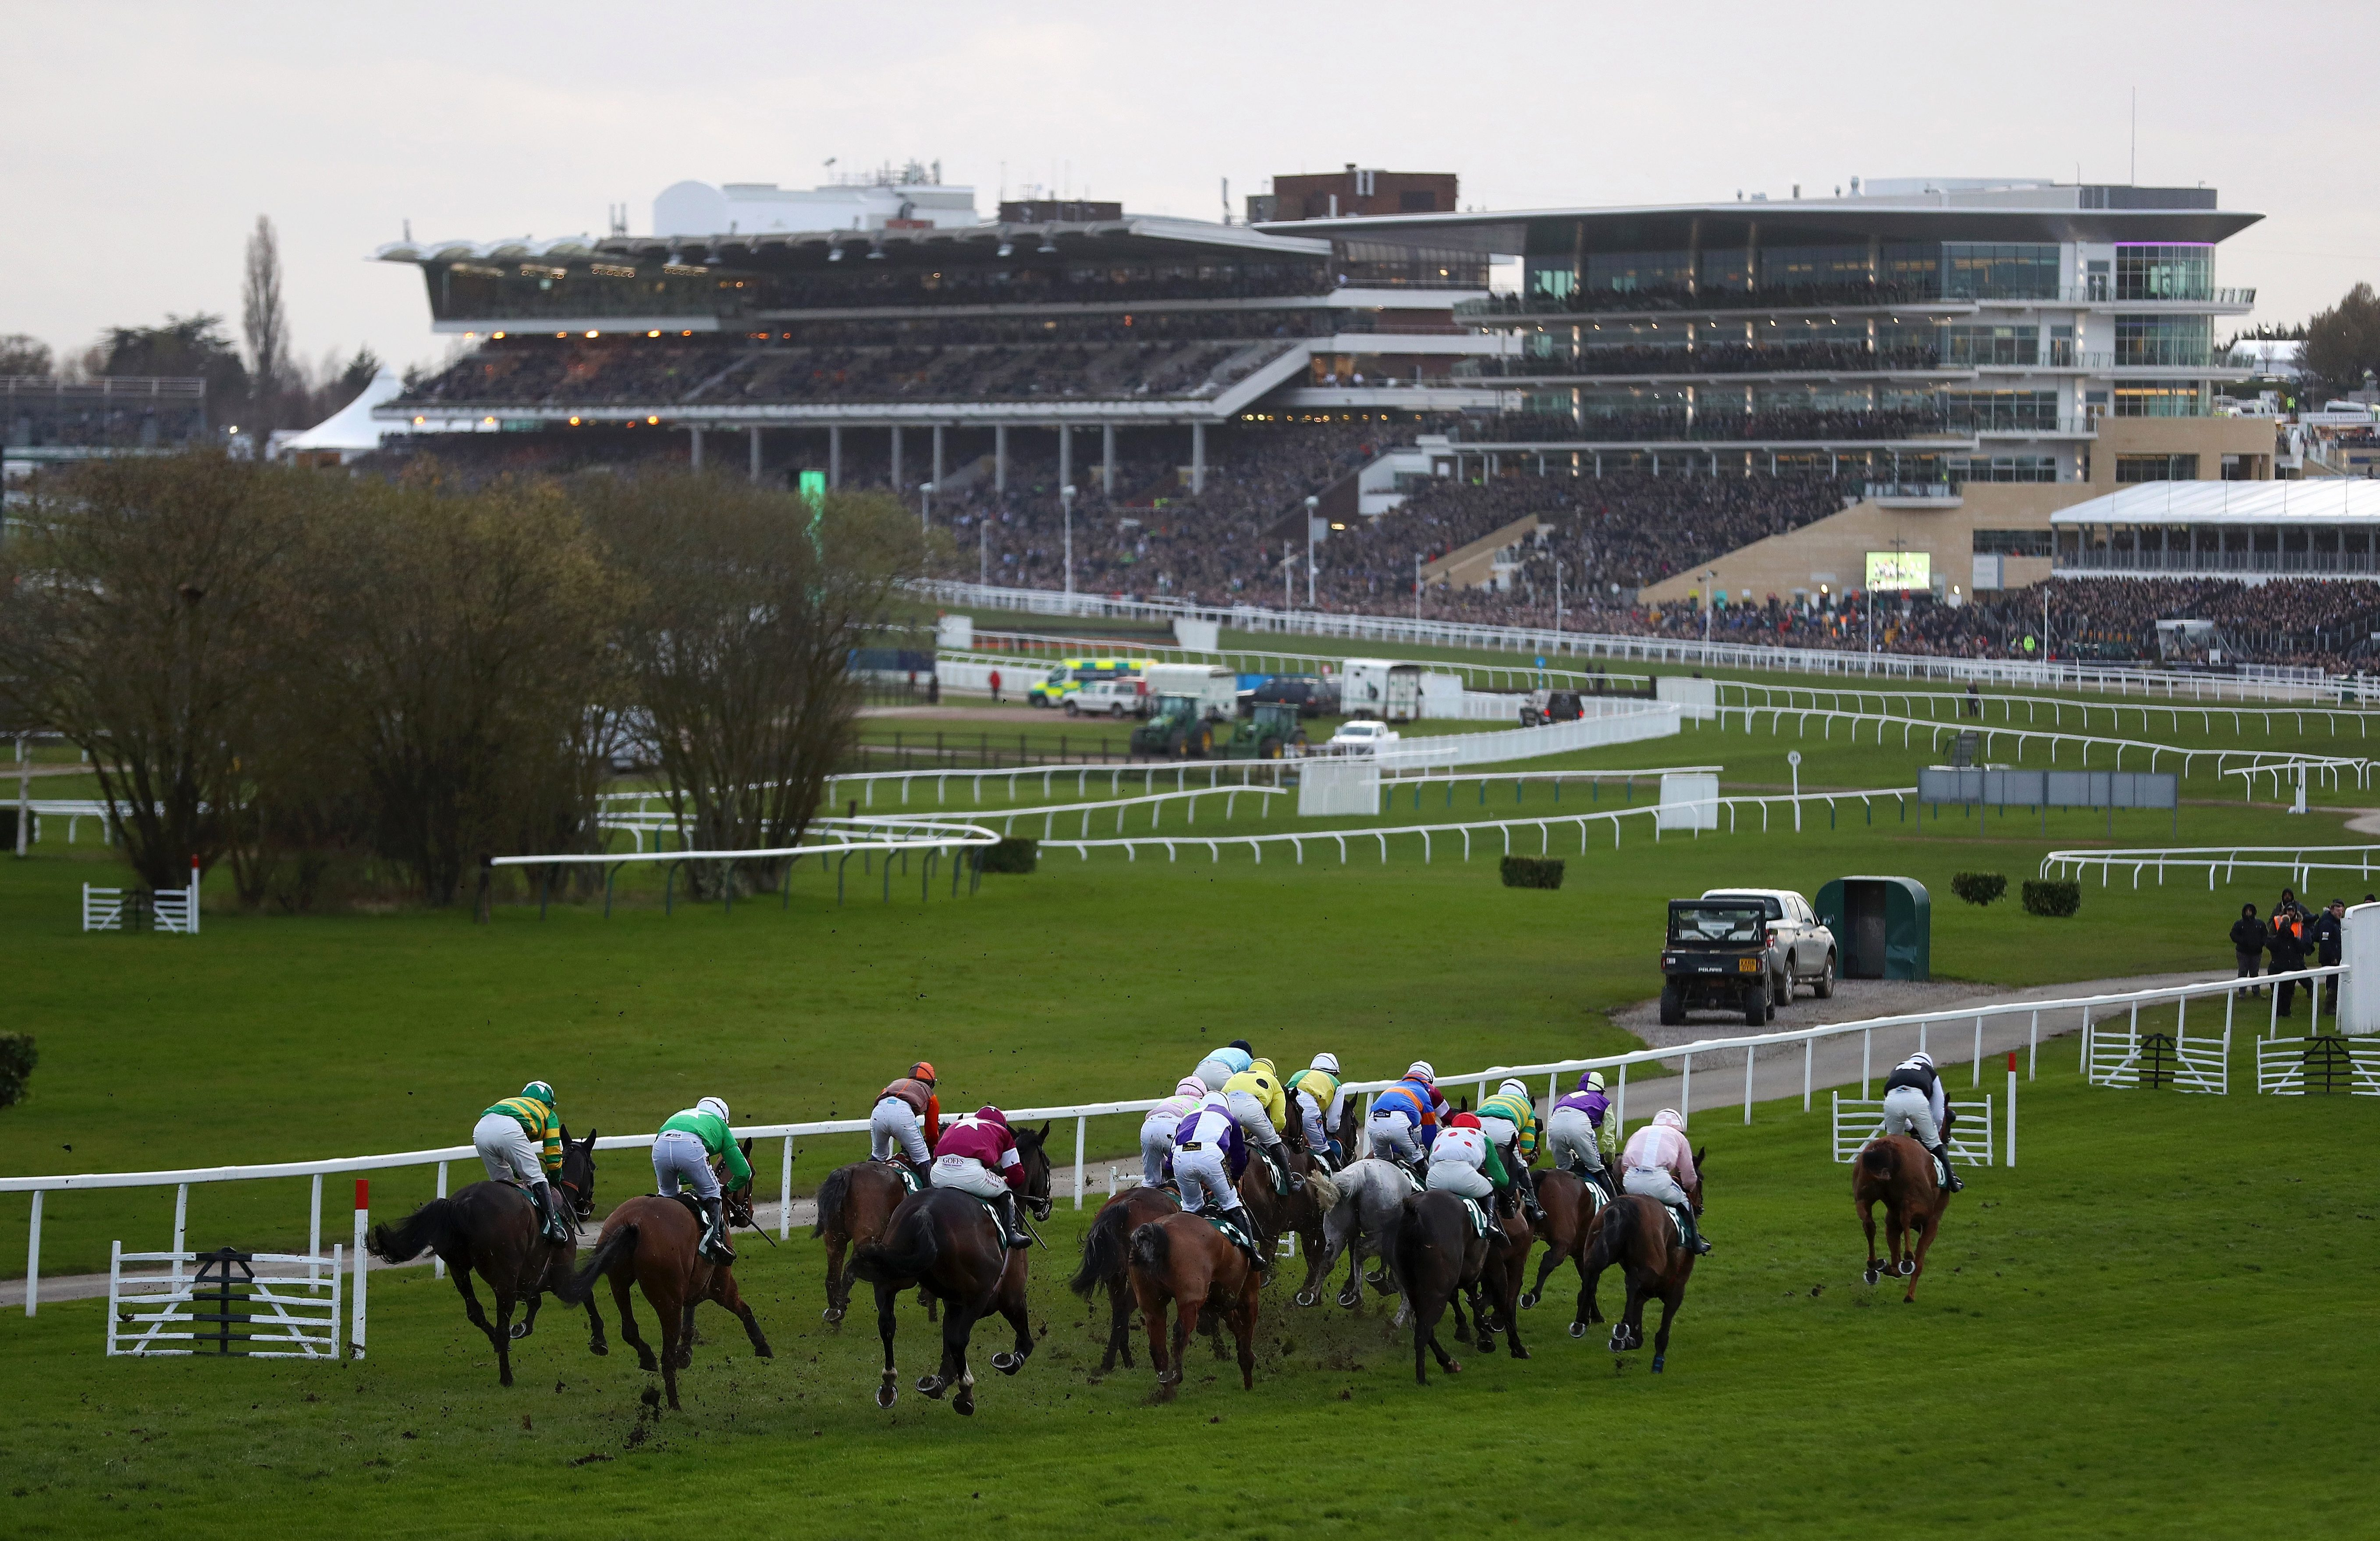 Best horse racing tips for today's action at Kempton, Fontwell, Uttoxeter, Newcastle and Wolverhampton from Tom Bull